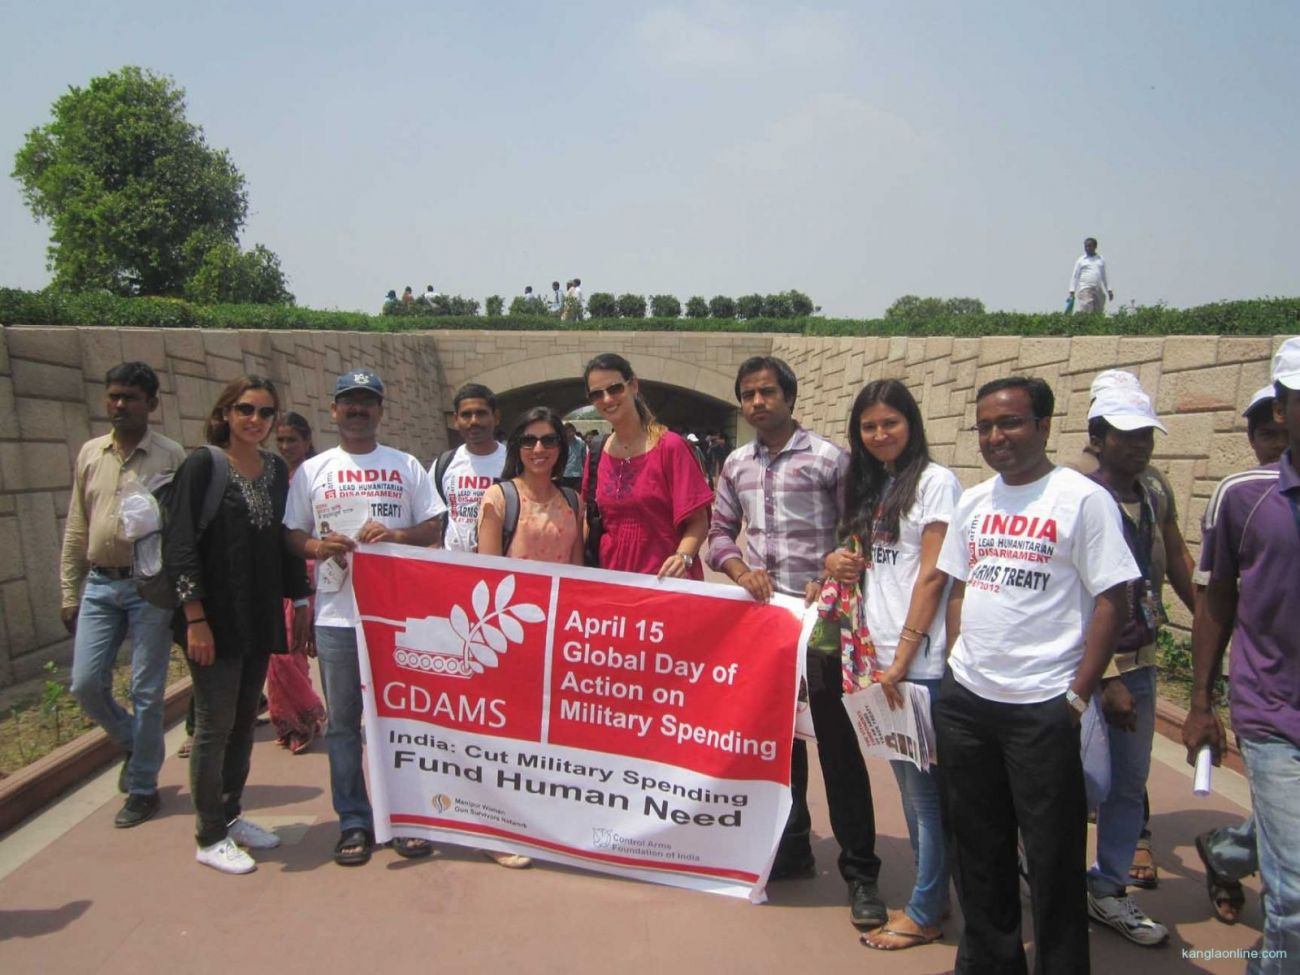 Global Day of Action on Military Spending Campaign at Raj Ghat on 15 April 2013